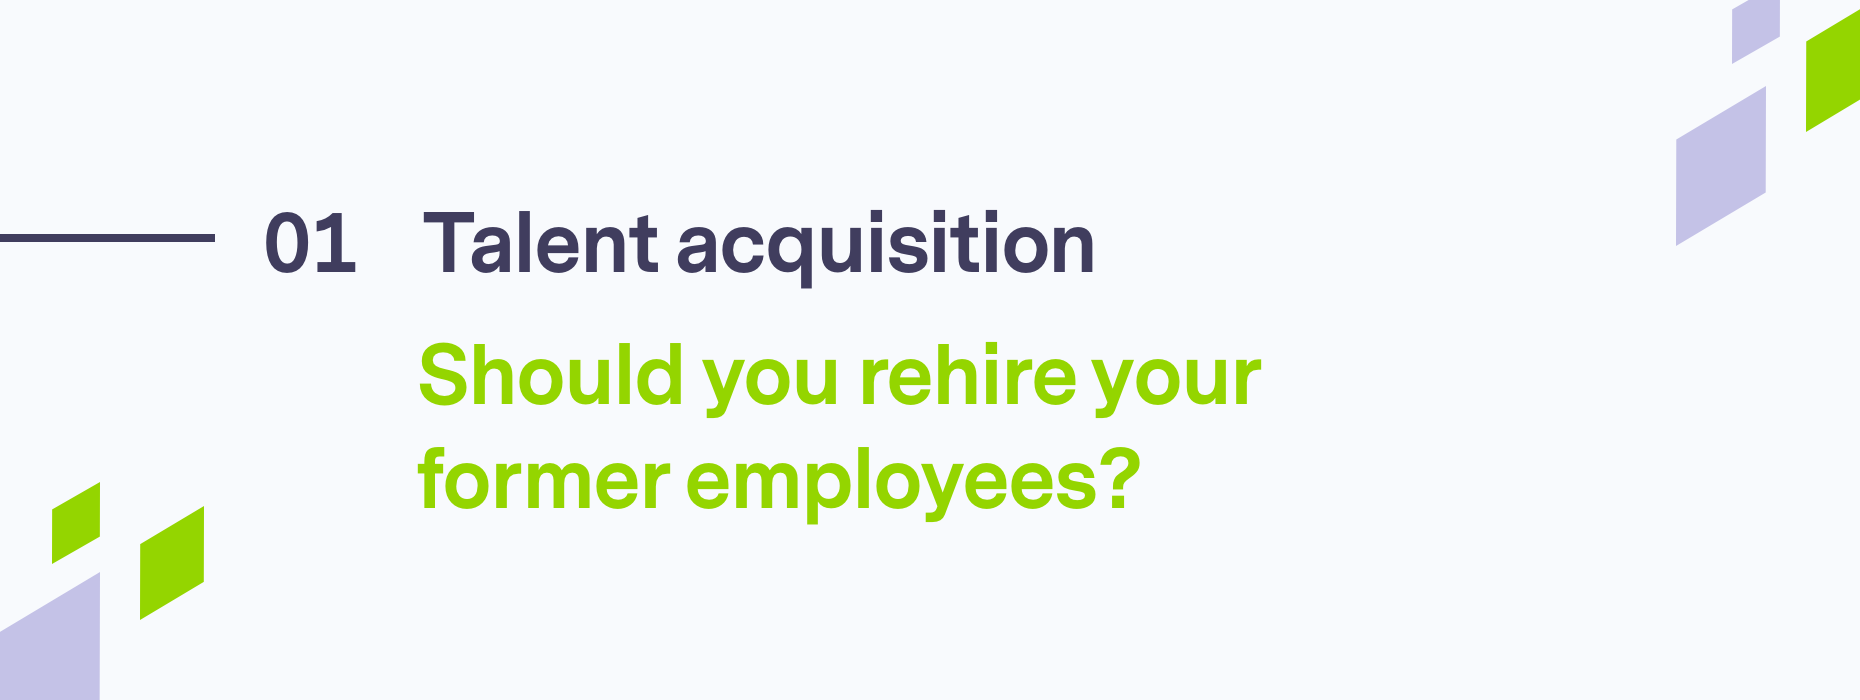 Should you rehire your former employees?